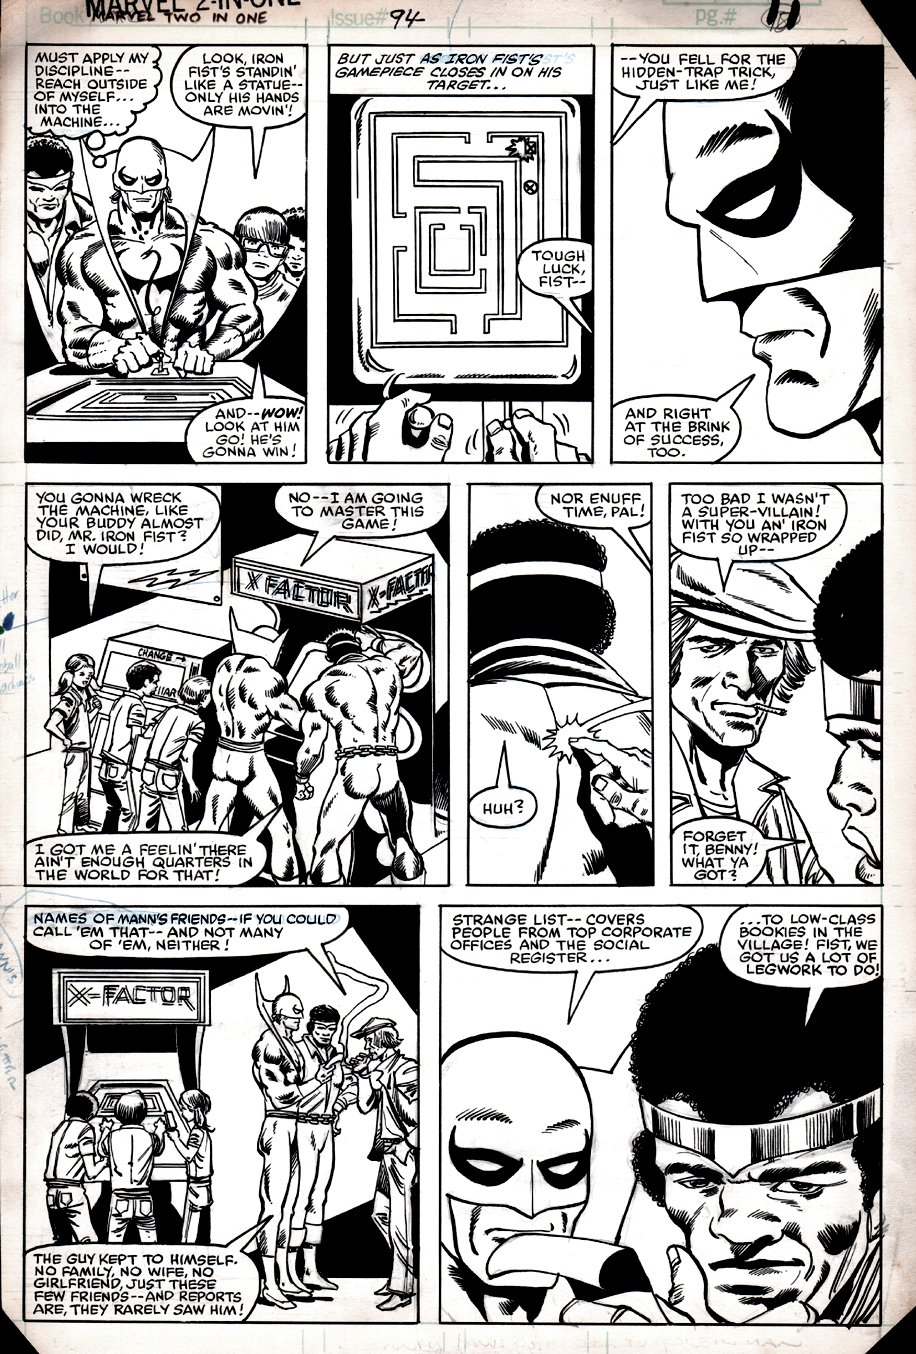 Marvel Two-in-One #94 p 11 (POWERMAN & IRONFIST PLAYING VIDEO GAMEl) 1982